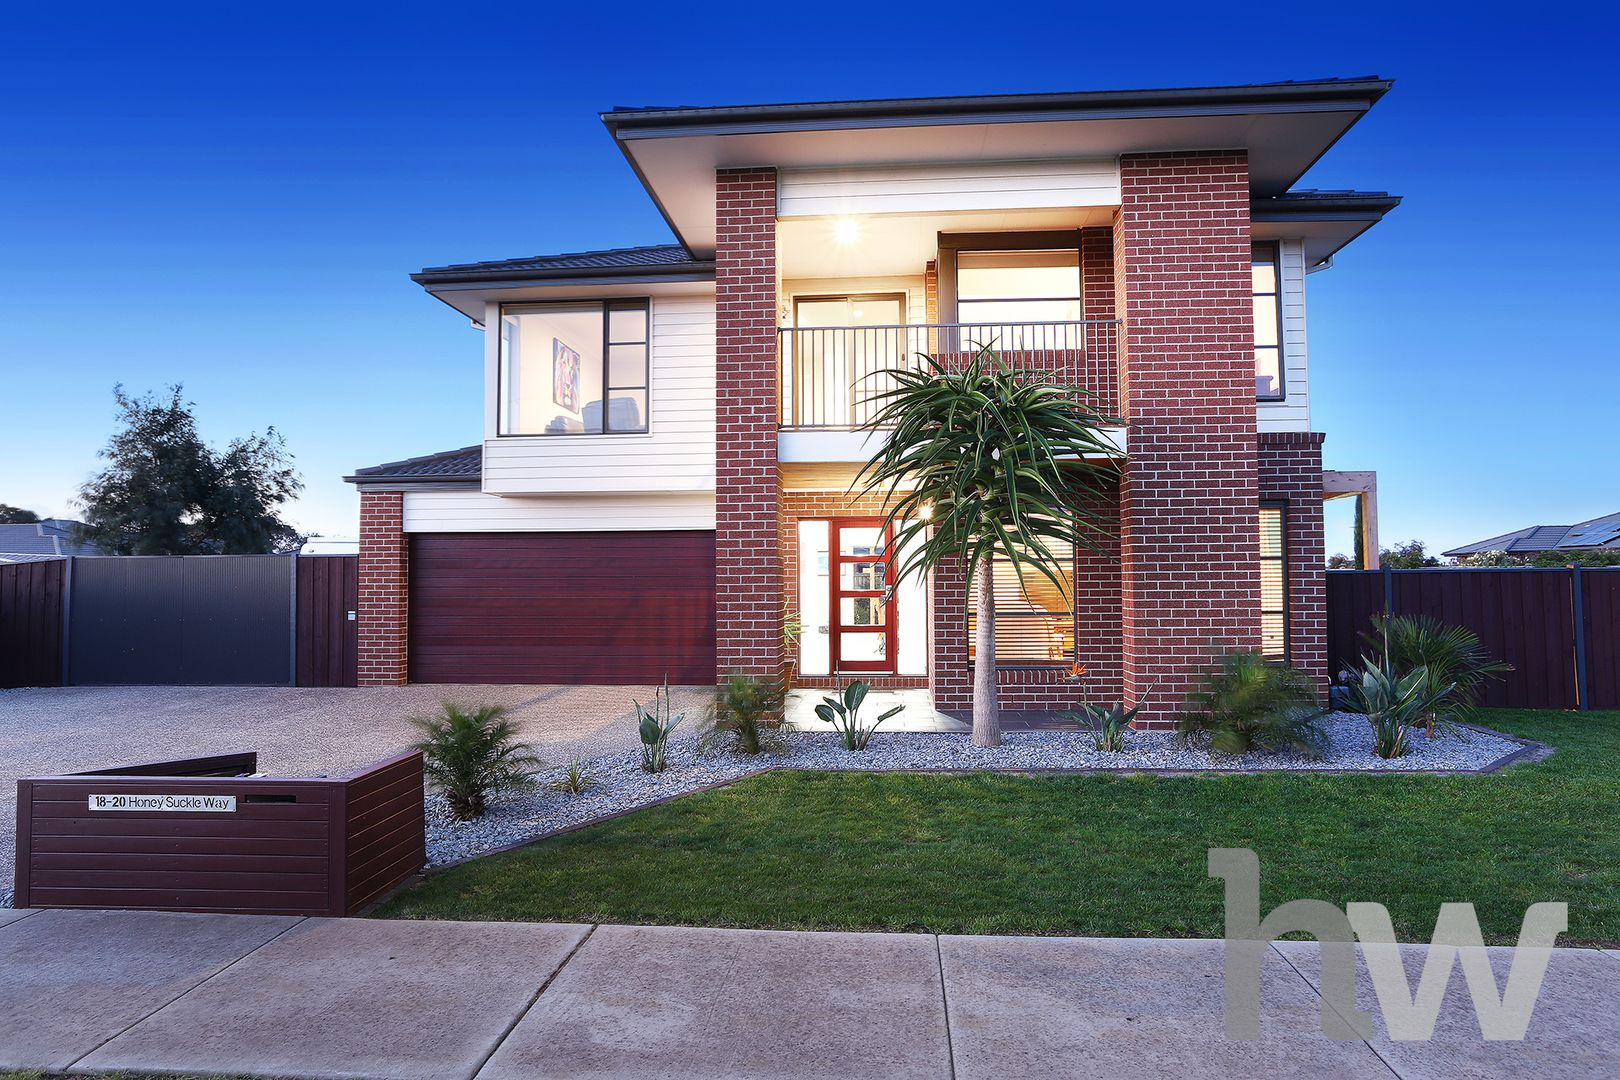 18-20 Honey Suckle Way, Armstrong Creek VIC 3217, Image 0